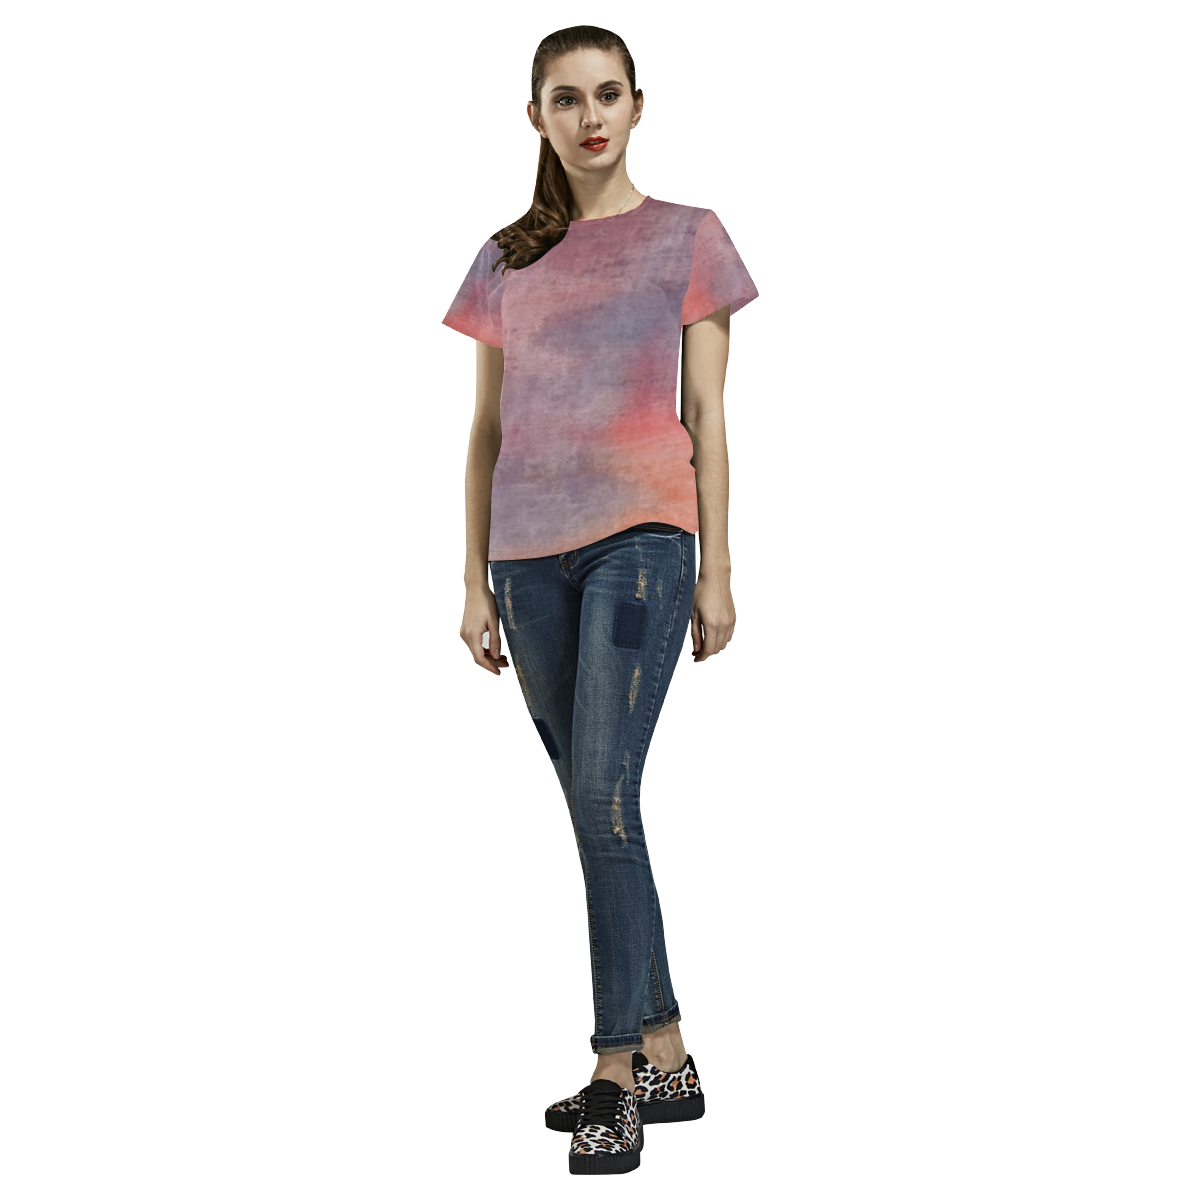 Noontide All Over Print T-Shirt for Women (USA Size) (Model T40)